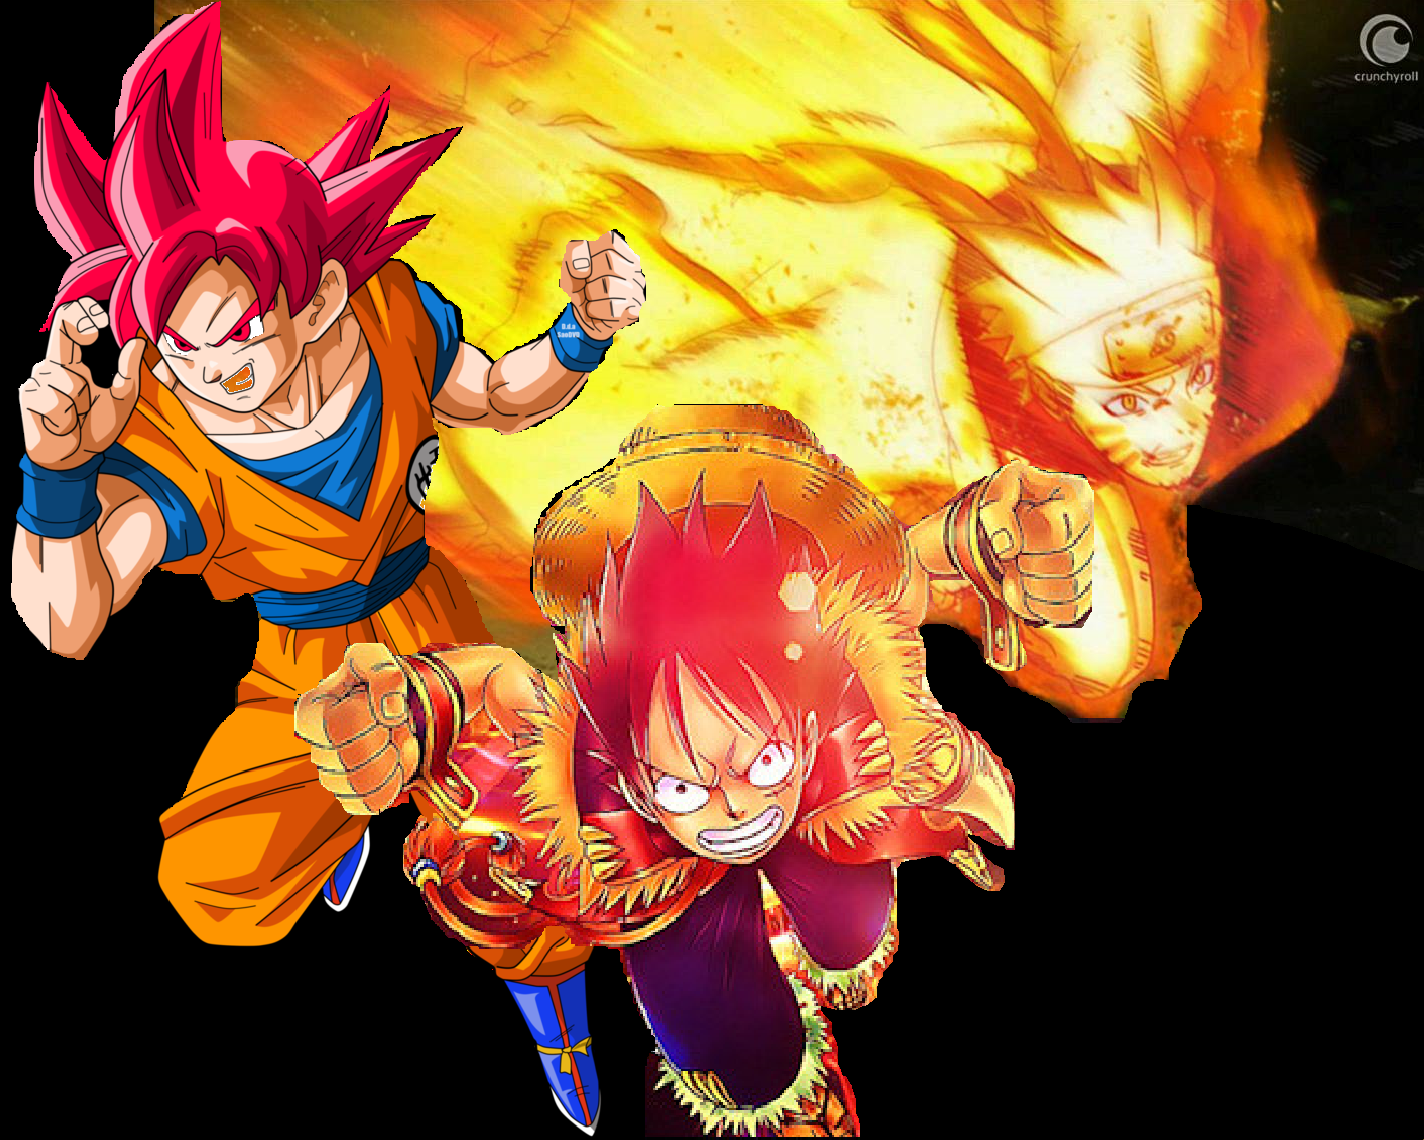 Most people wouldn't even bother with the thought because it sounds so unbelievable, but bandai namco has shocked the world. Goku Naruto And Luffy Anime Dragon Ball Super Anime Dragon Ball Naruto And Sasuke Wallpaper